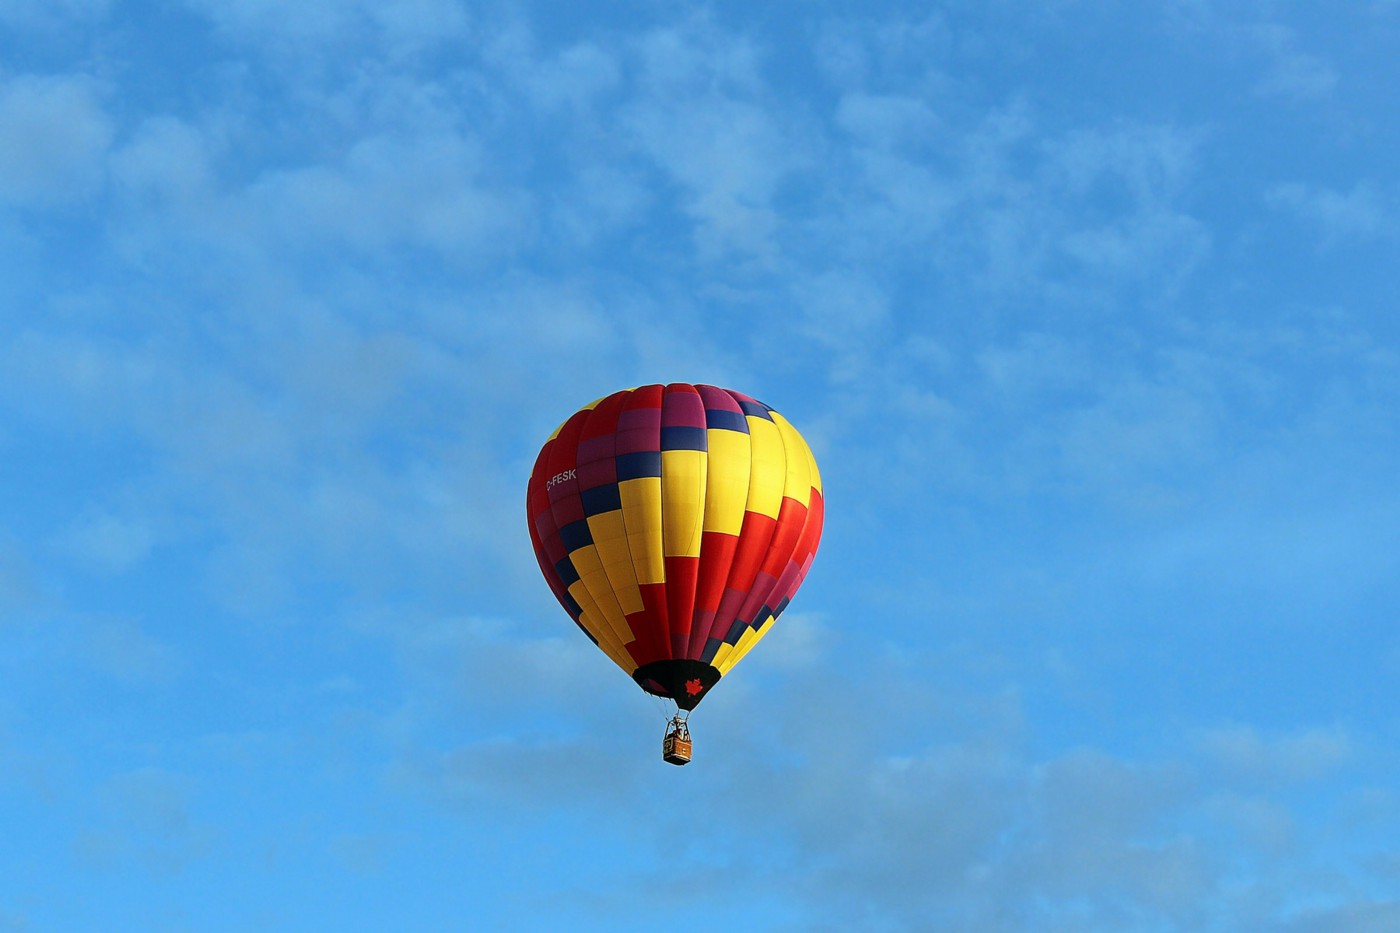 Multicolored hot air balloon in blue sky.